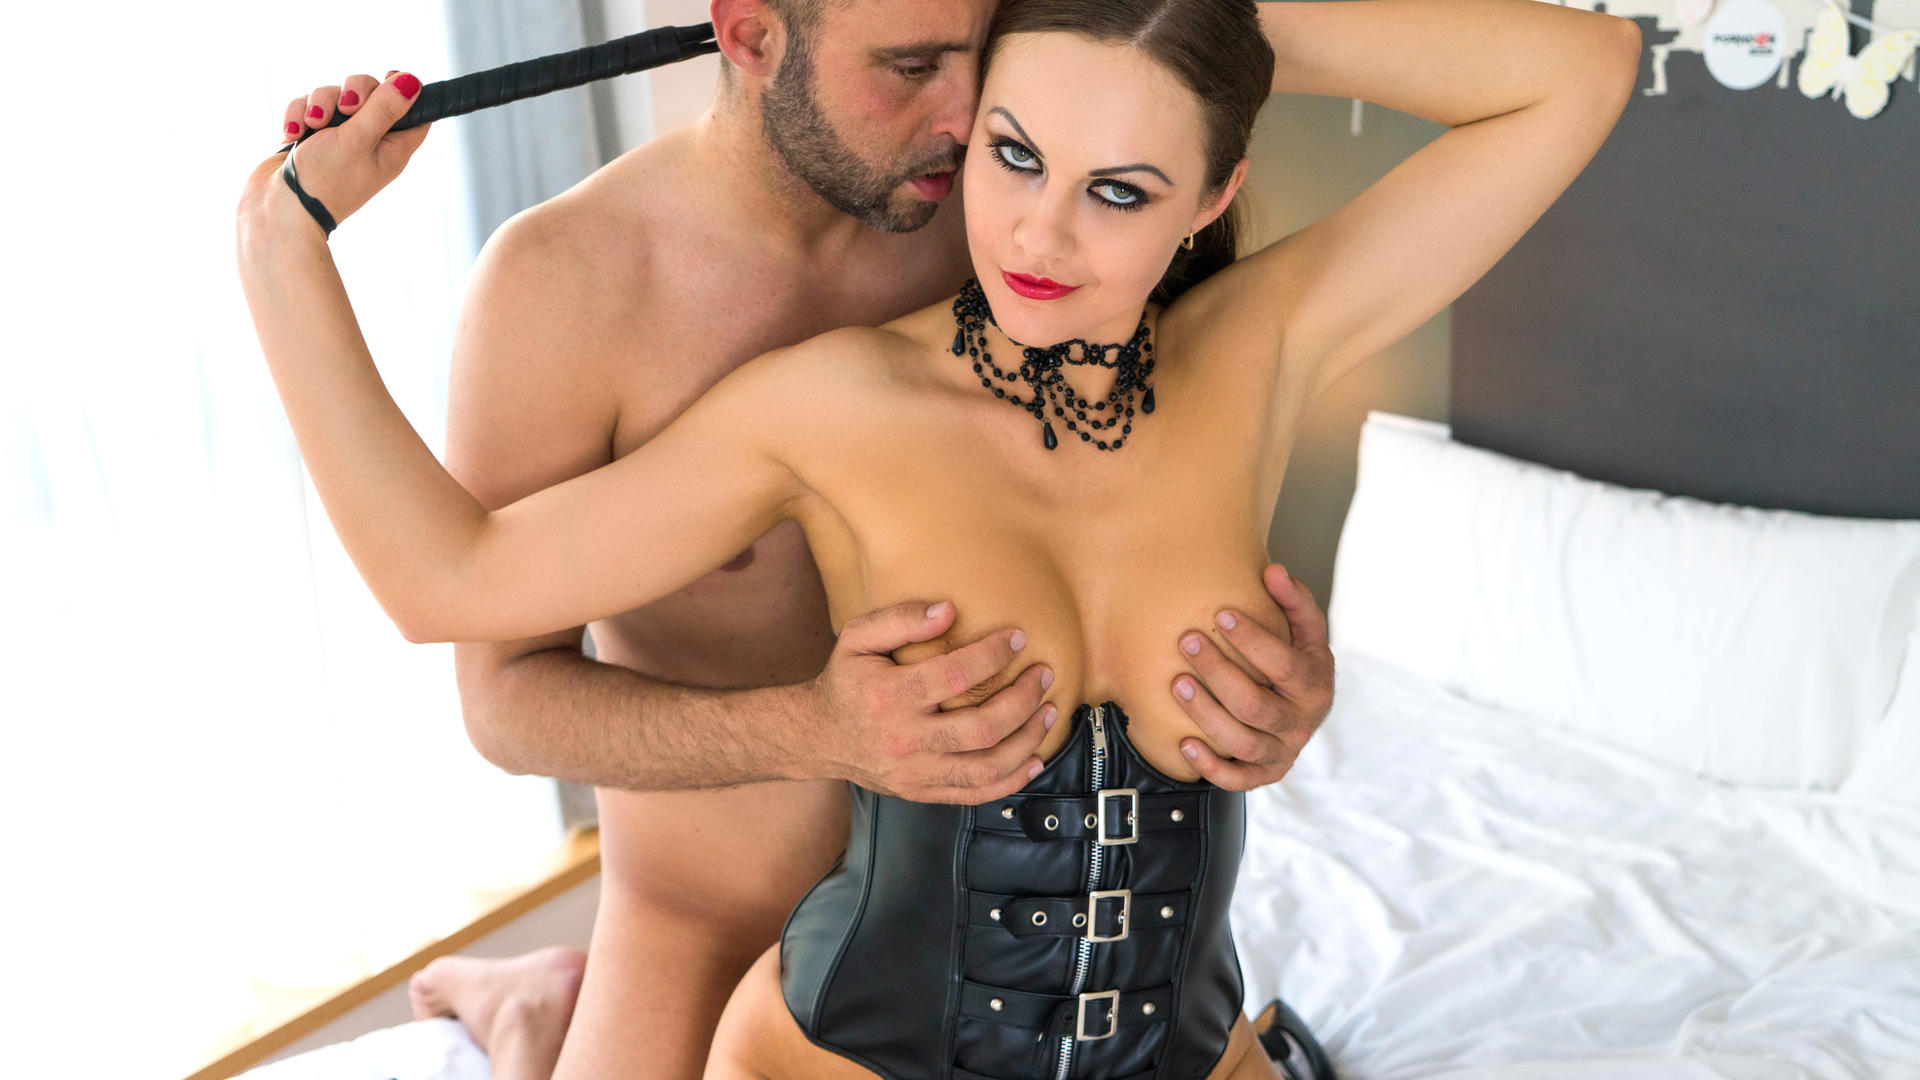 Hot sex guide to roleplay with feisty British babe Tina Kay & Pablo Ferrari